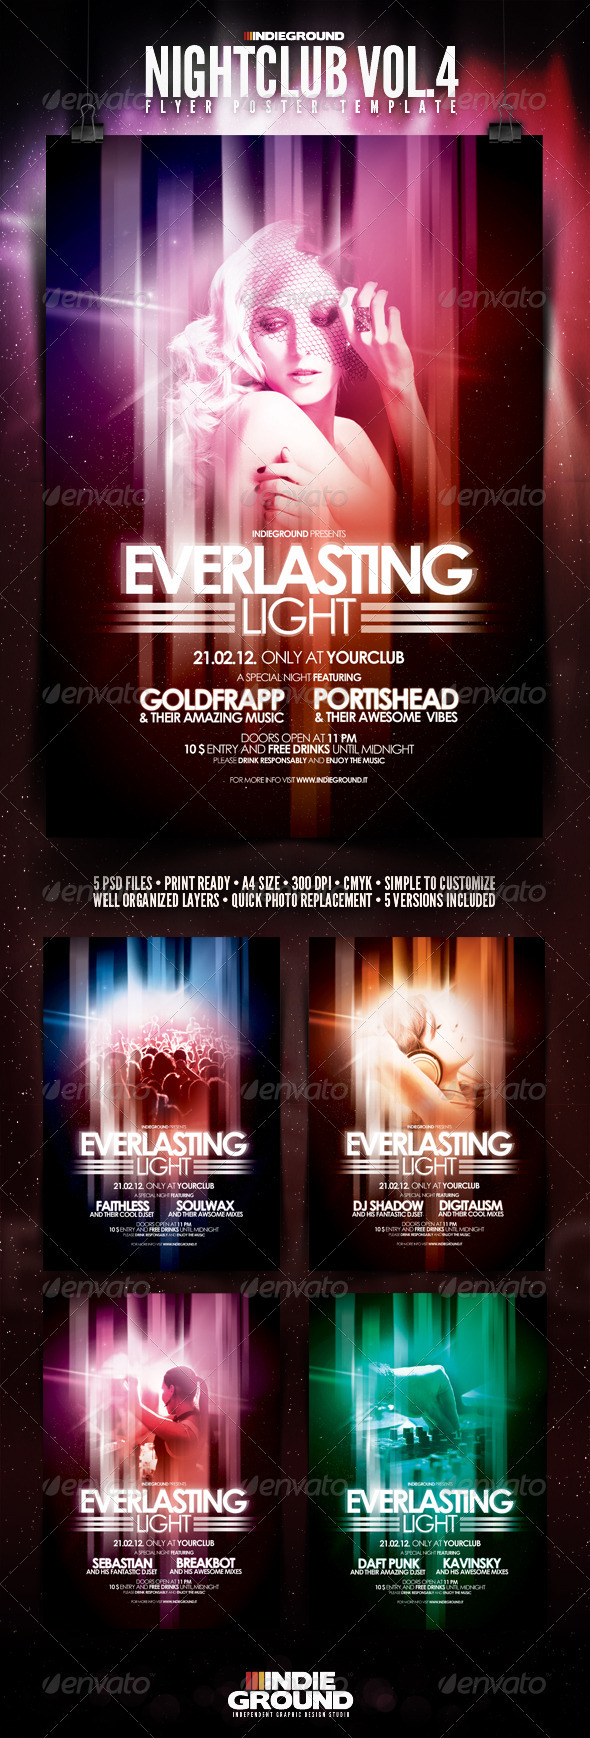 Nightclub Flyer/Poster Vol. 4 - Clubs & Parties Events